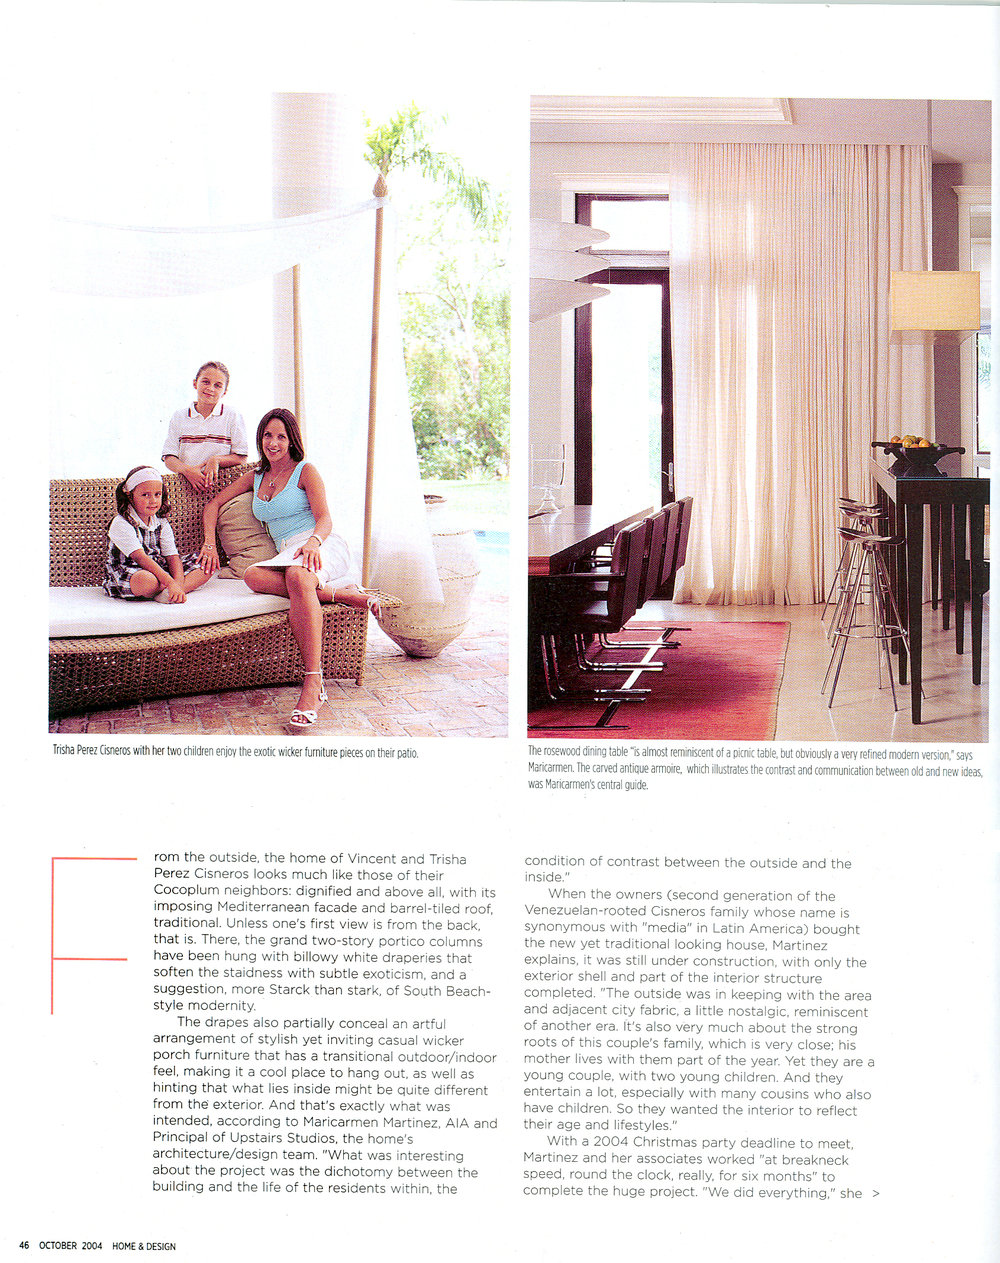 Home&Design October2004 article page 3.jpg